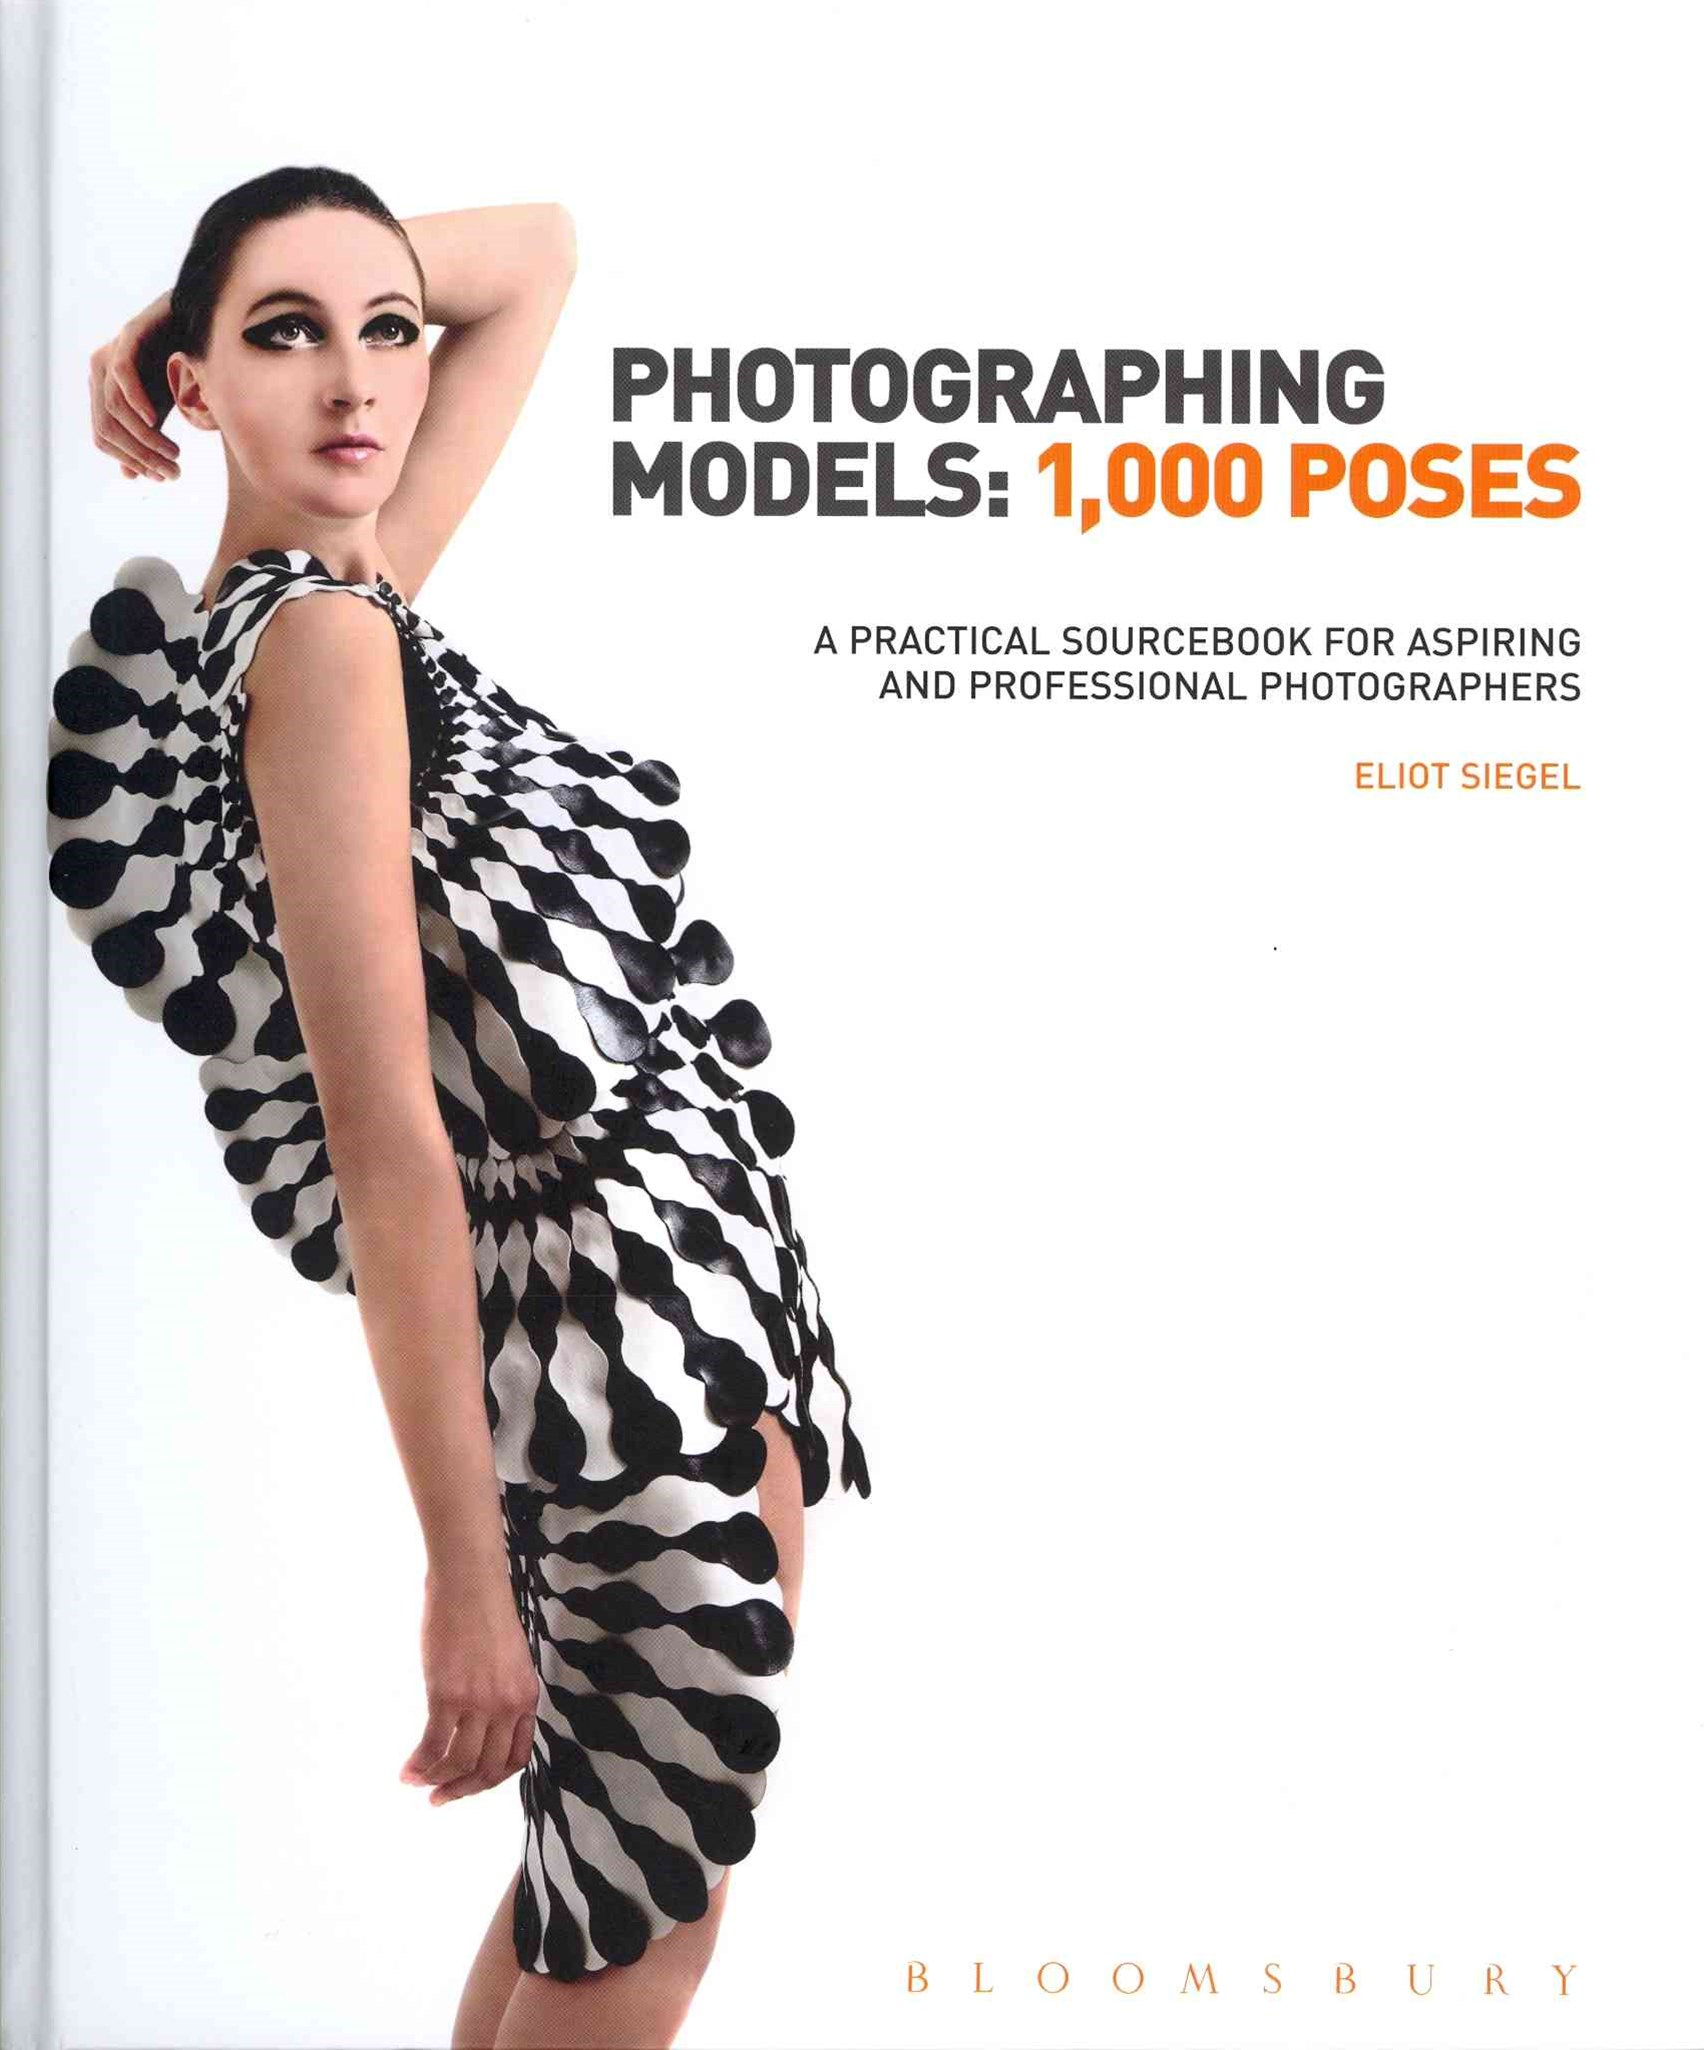 Photographing Models - 1,000 Poses